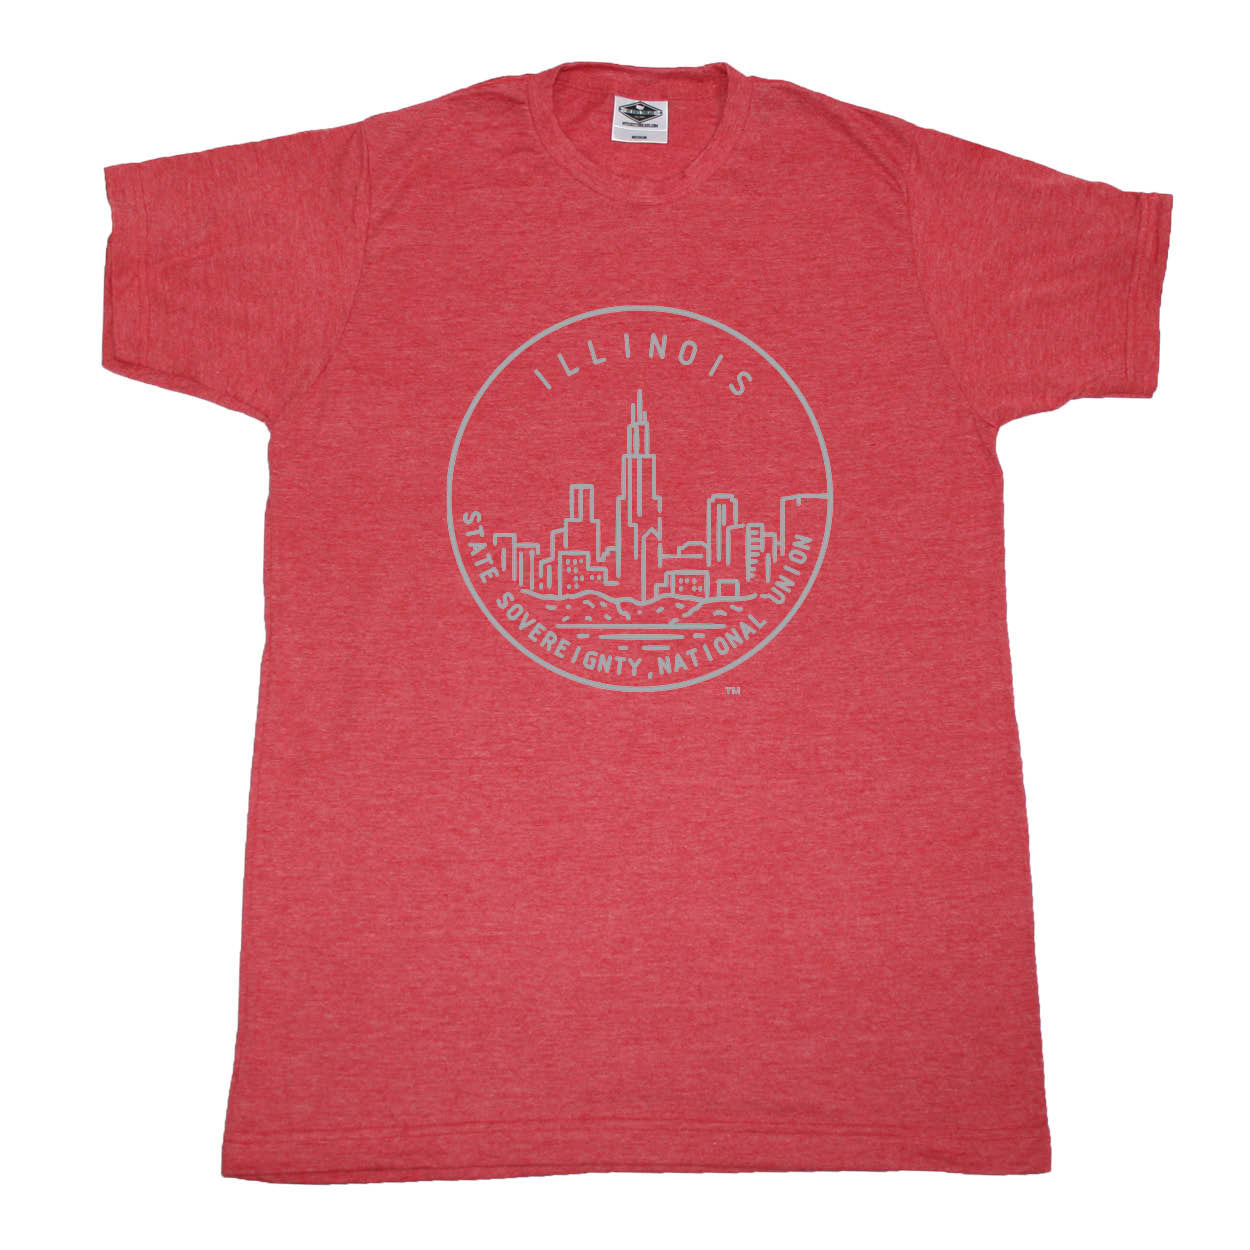 ILLINOIS RED TEE | STATE SEAL |  STATE SOVEREIGNTY, NATIONAL UNION